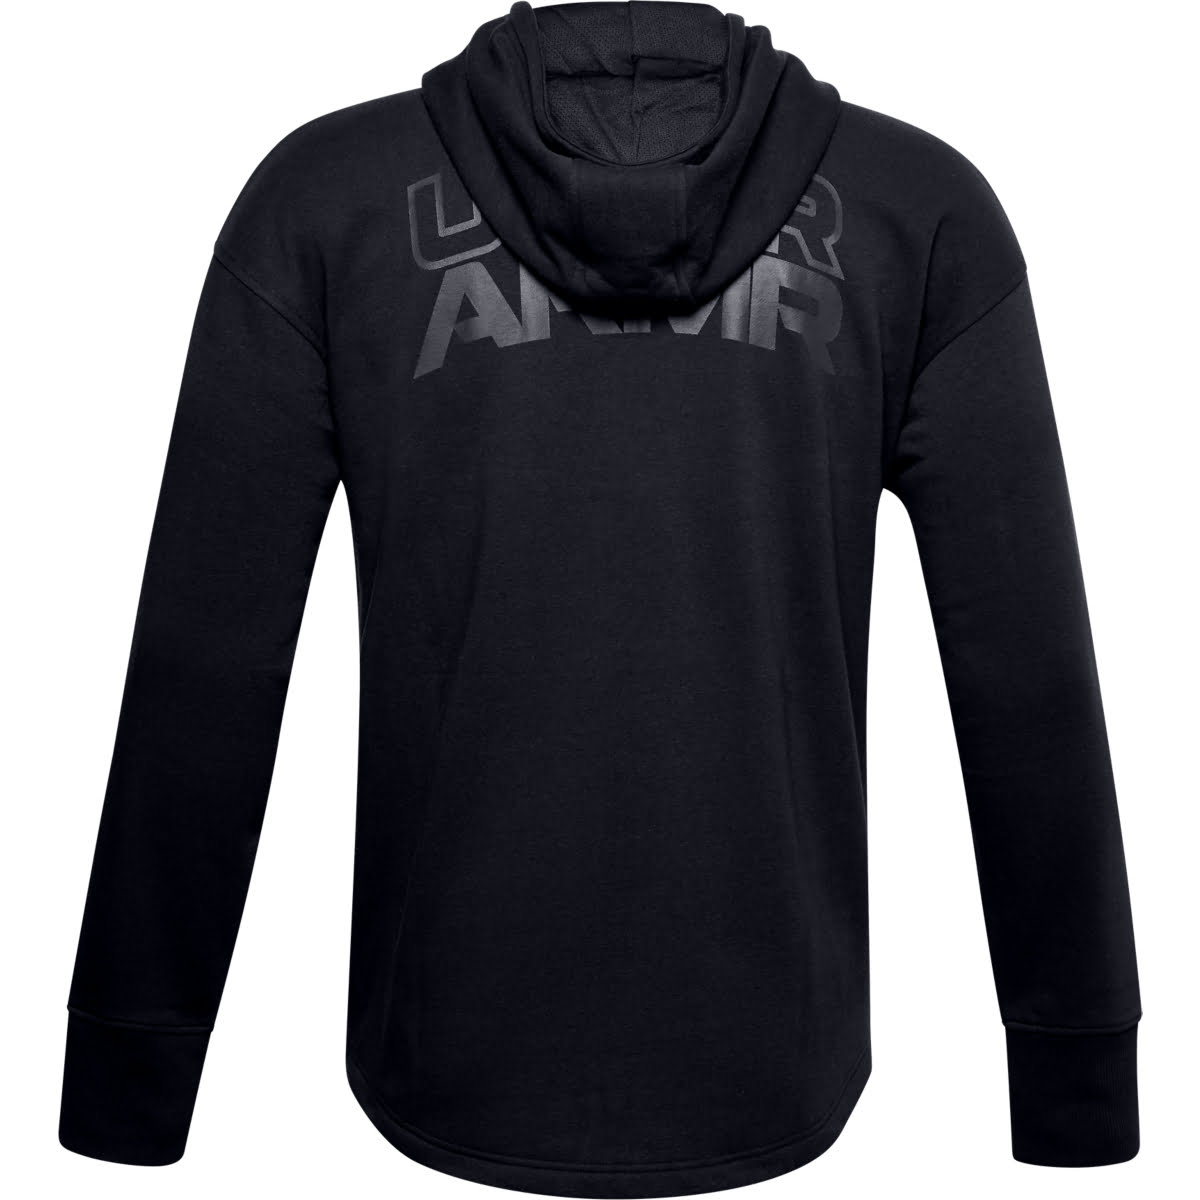 Hanorac Under Armour S5 Fleece